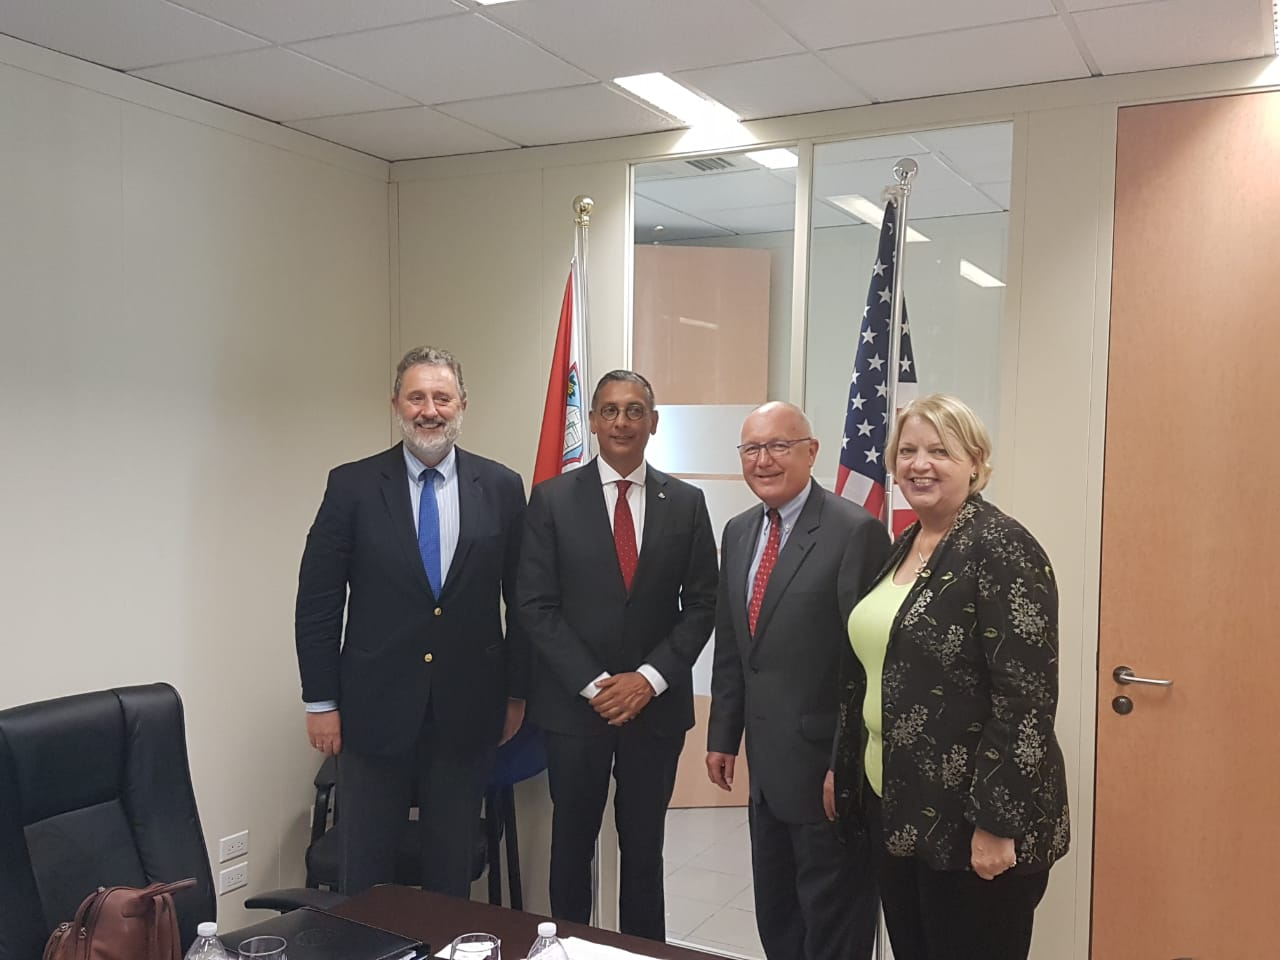 Minister Finance Visit with US Ambassador 18072018 3